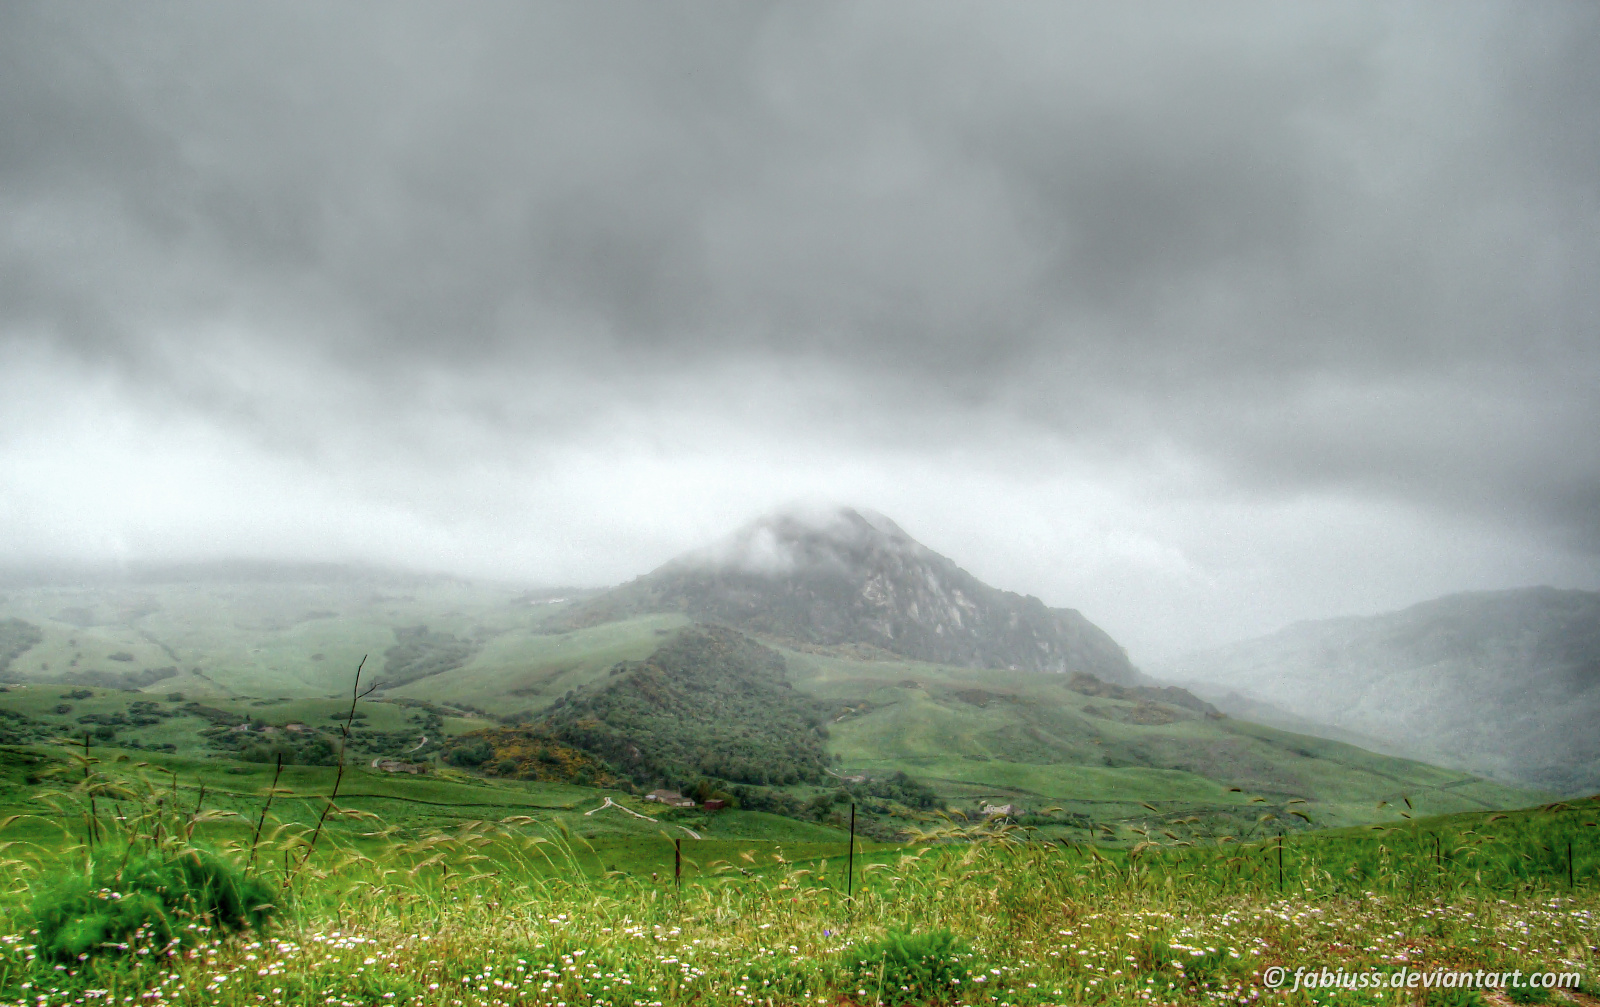 Foggy Morning on the Hills by Fabiuss